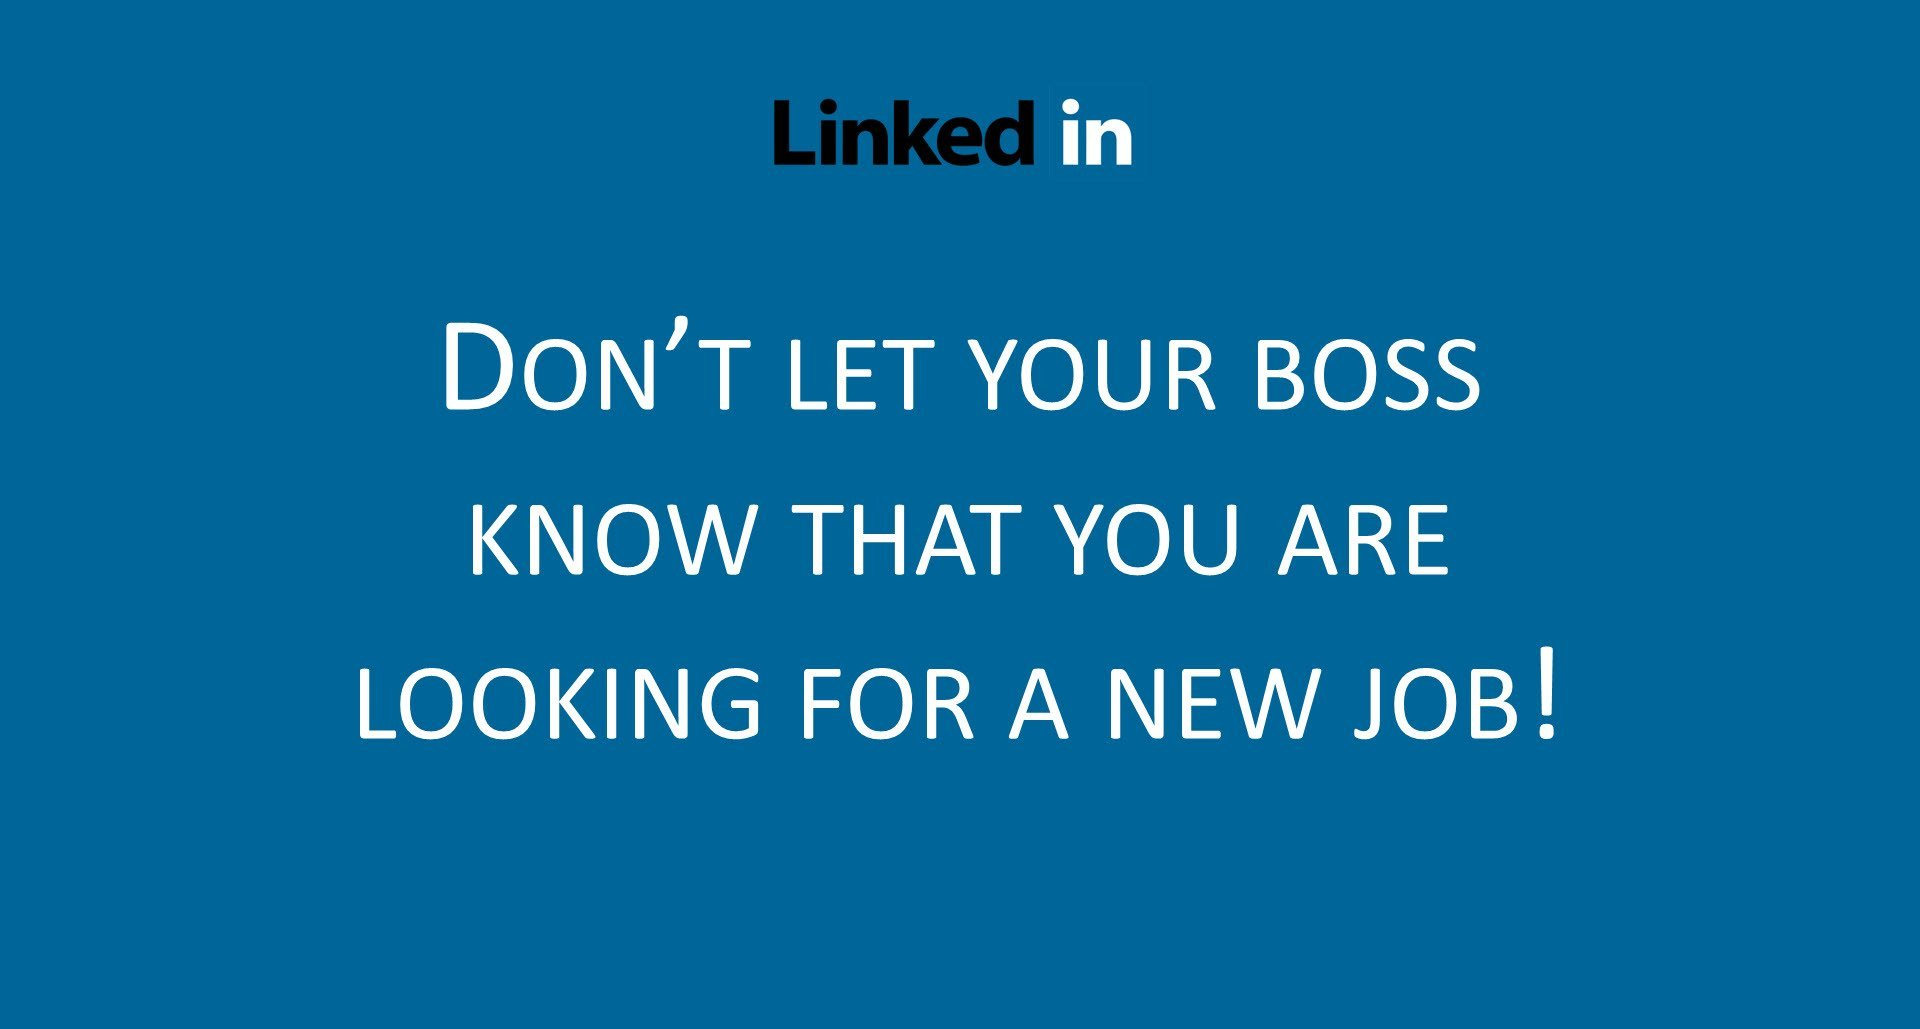 LinkedIn tip – Don't let your boss know that you're looking for a new job!